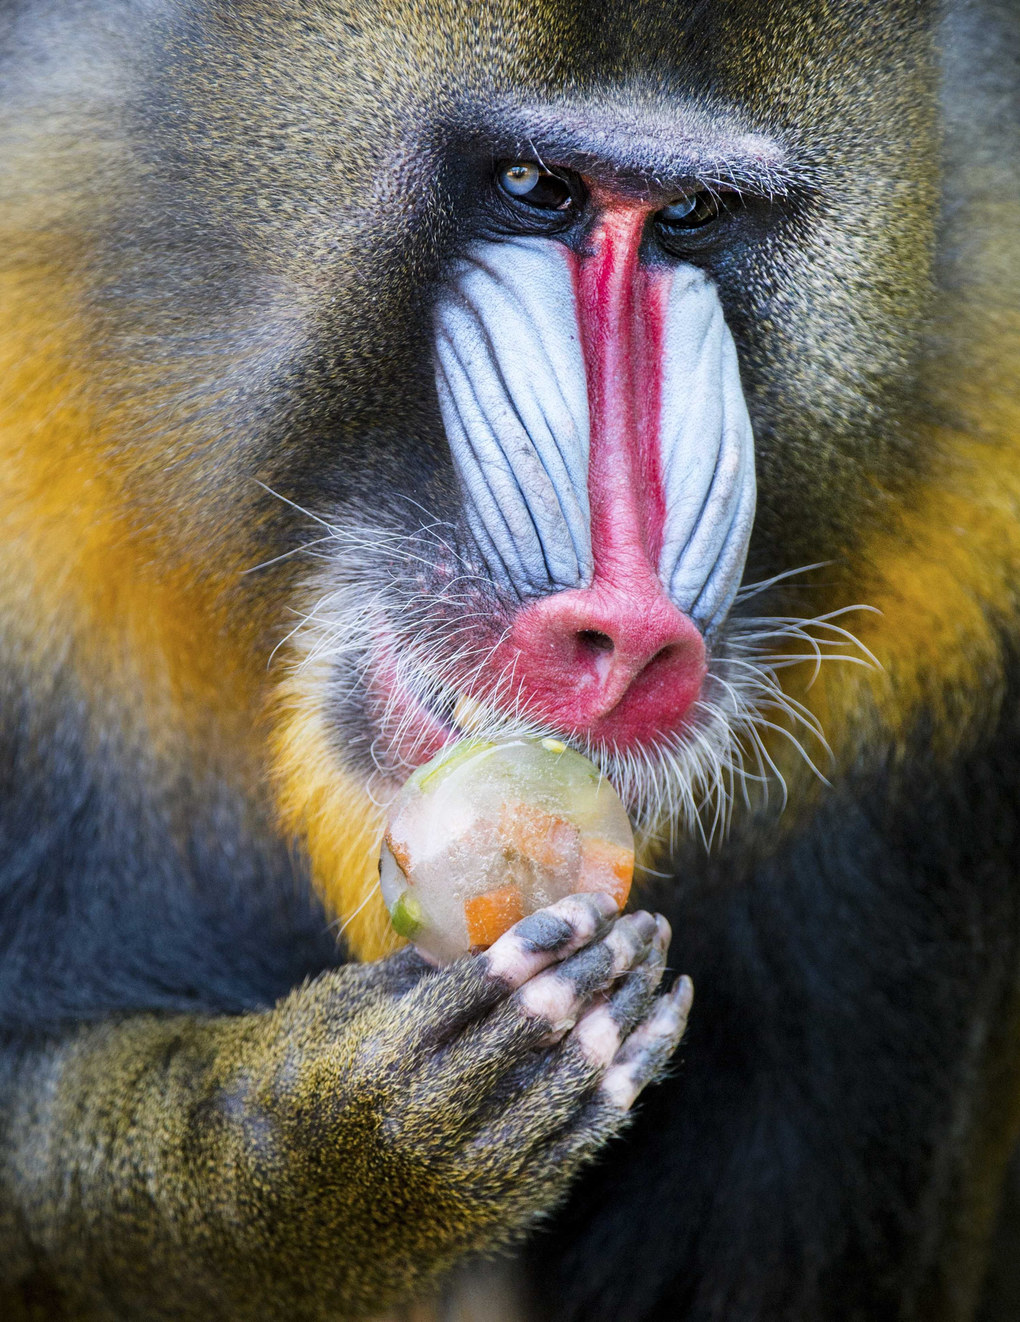 A mandrill licks an iced fruit in Ouwehands Dierenpark (Ouwehands Zoo) in Rhenen, Netherlands, June 30, 2015. The animals in the zoo get some refreshments to cool them down, with temperatures reaching 28 degrees Celsius.  EPA/PIROSCHKA VAN DE WOUW